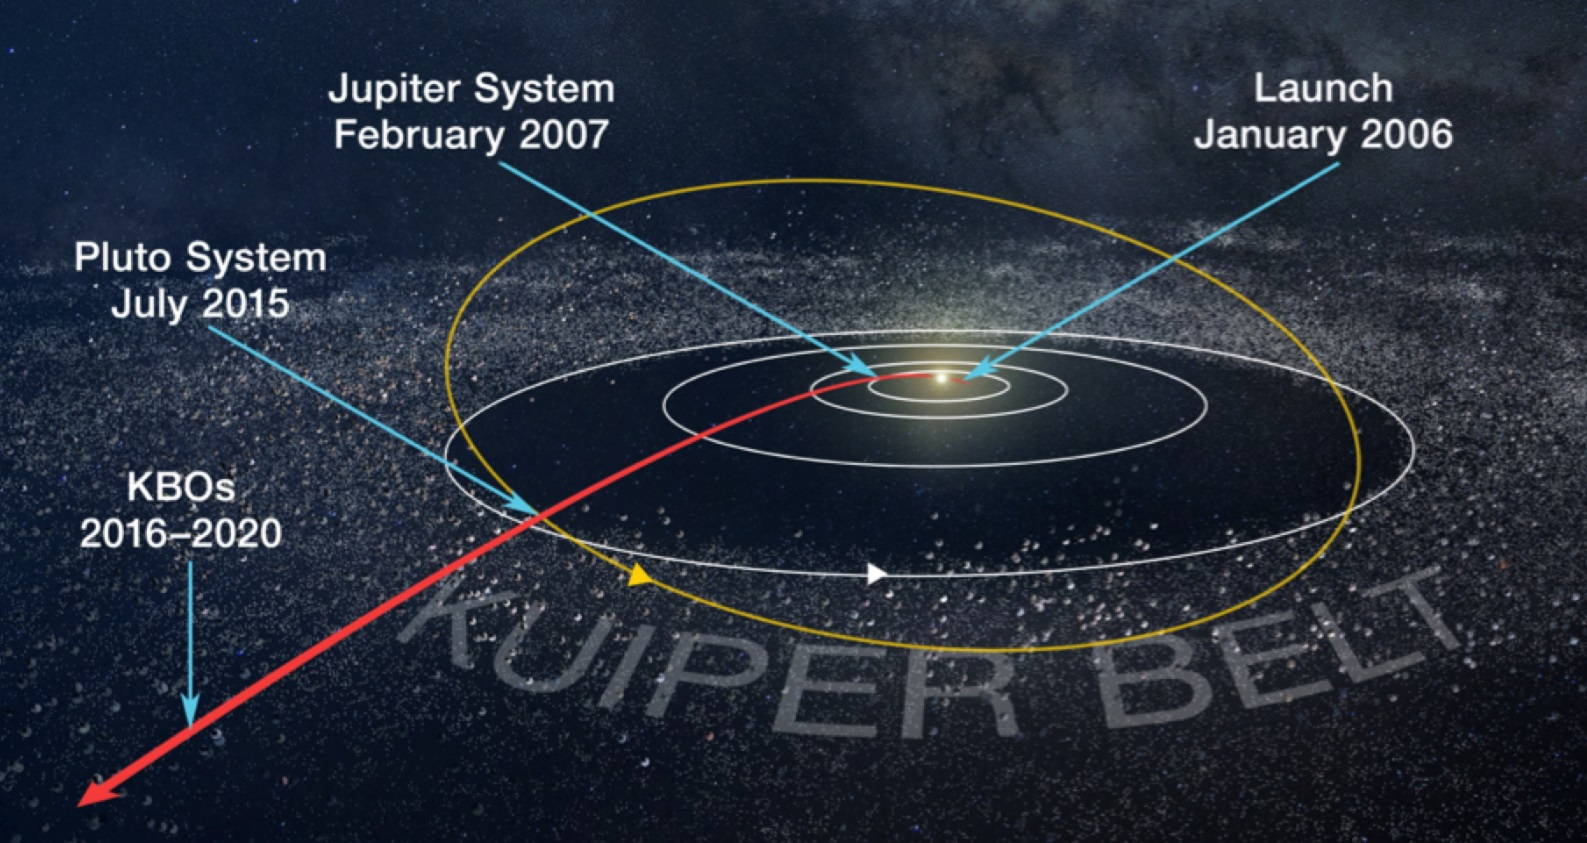 The New Horizons probe buzzes the most distant object ever encountered first thing tomorrow kuiper